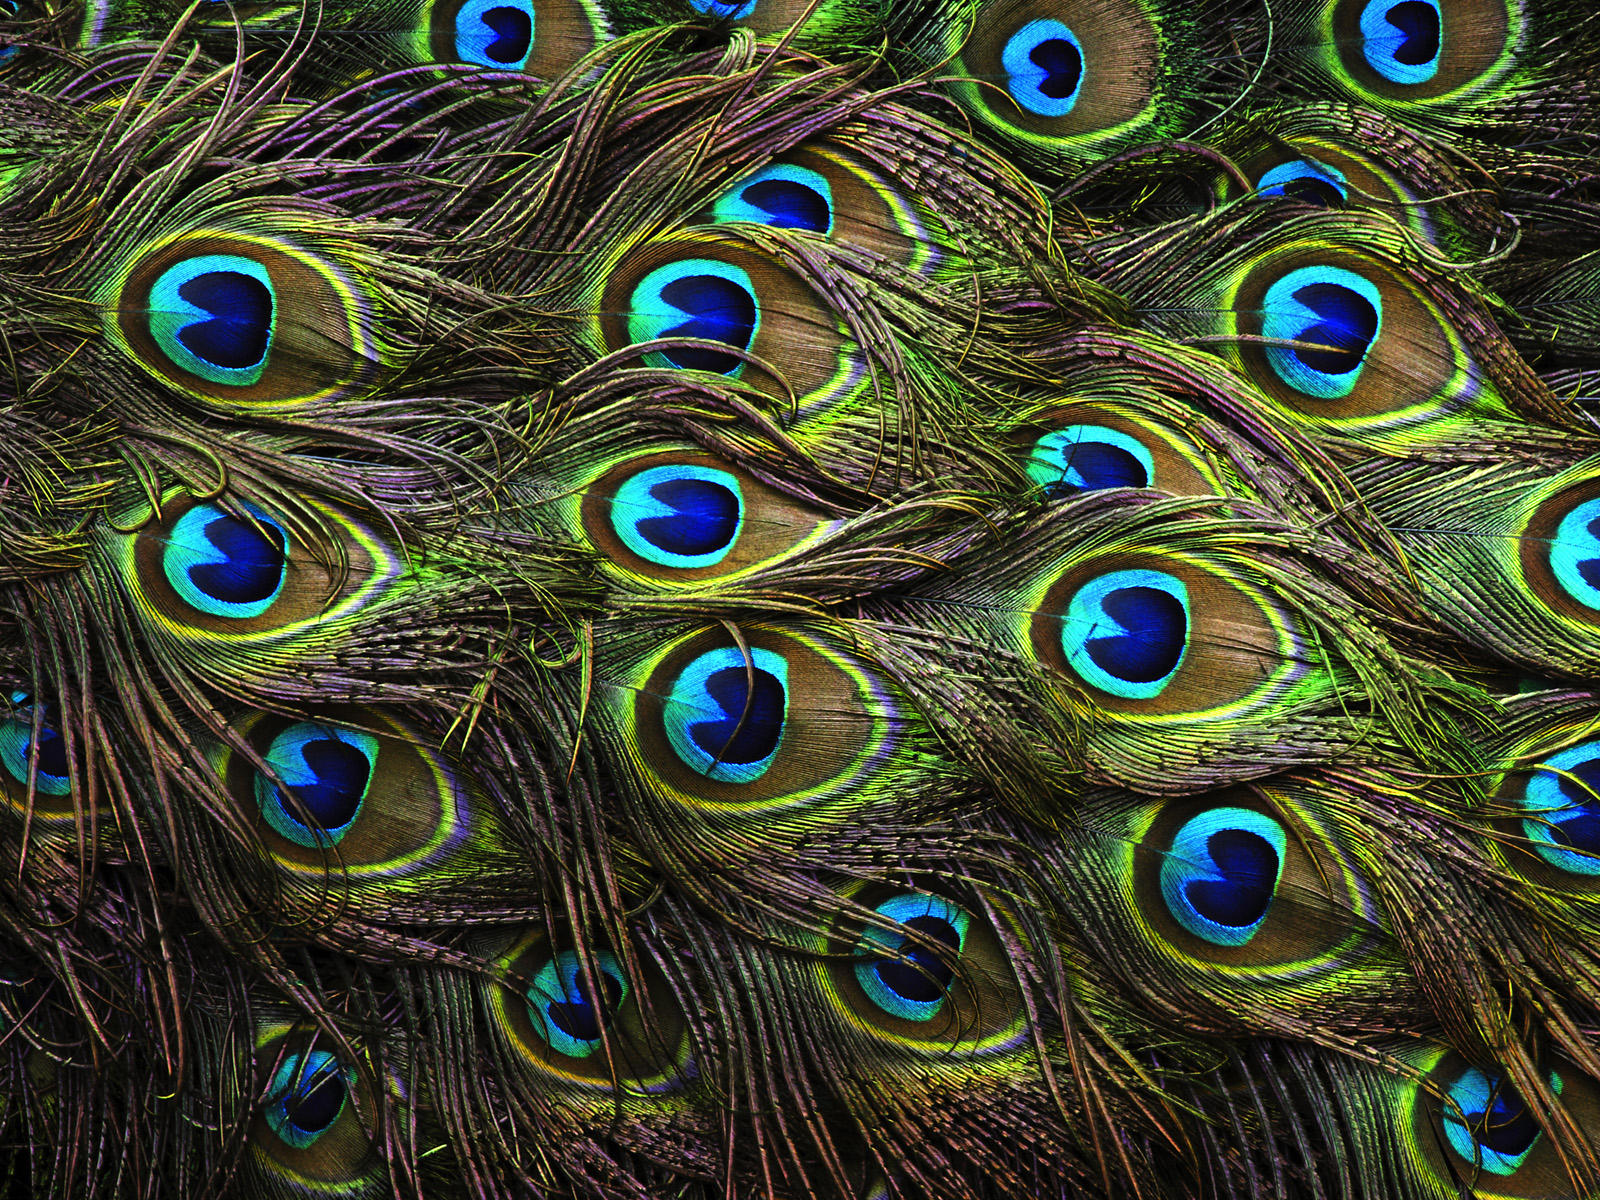 Peacock Feathers Wallpaper And Background Image